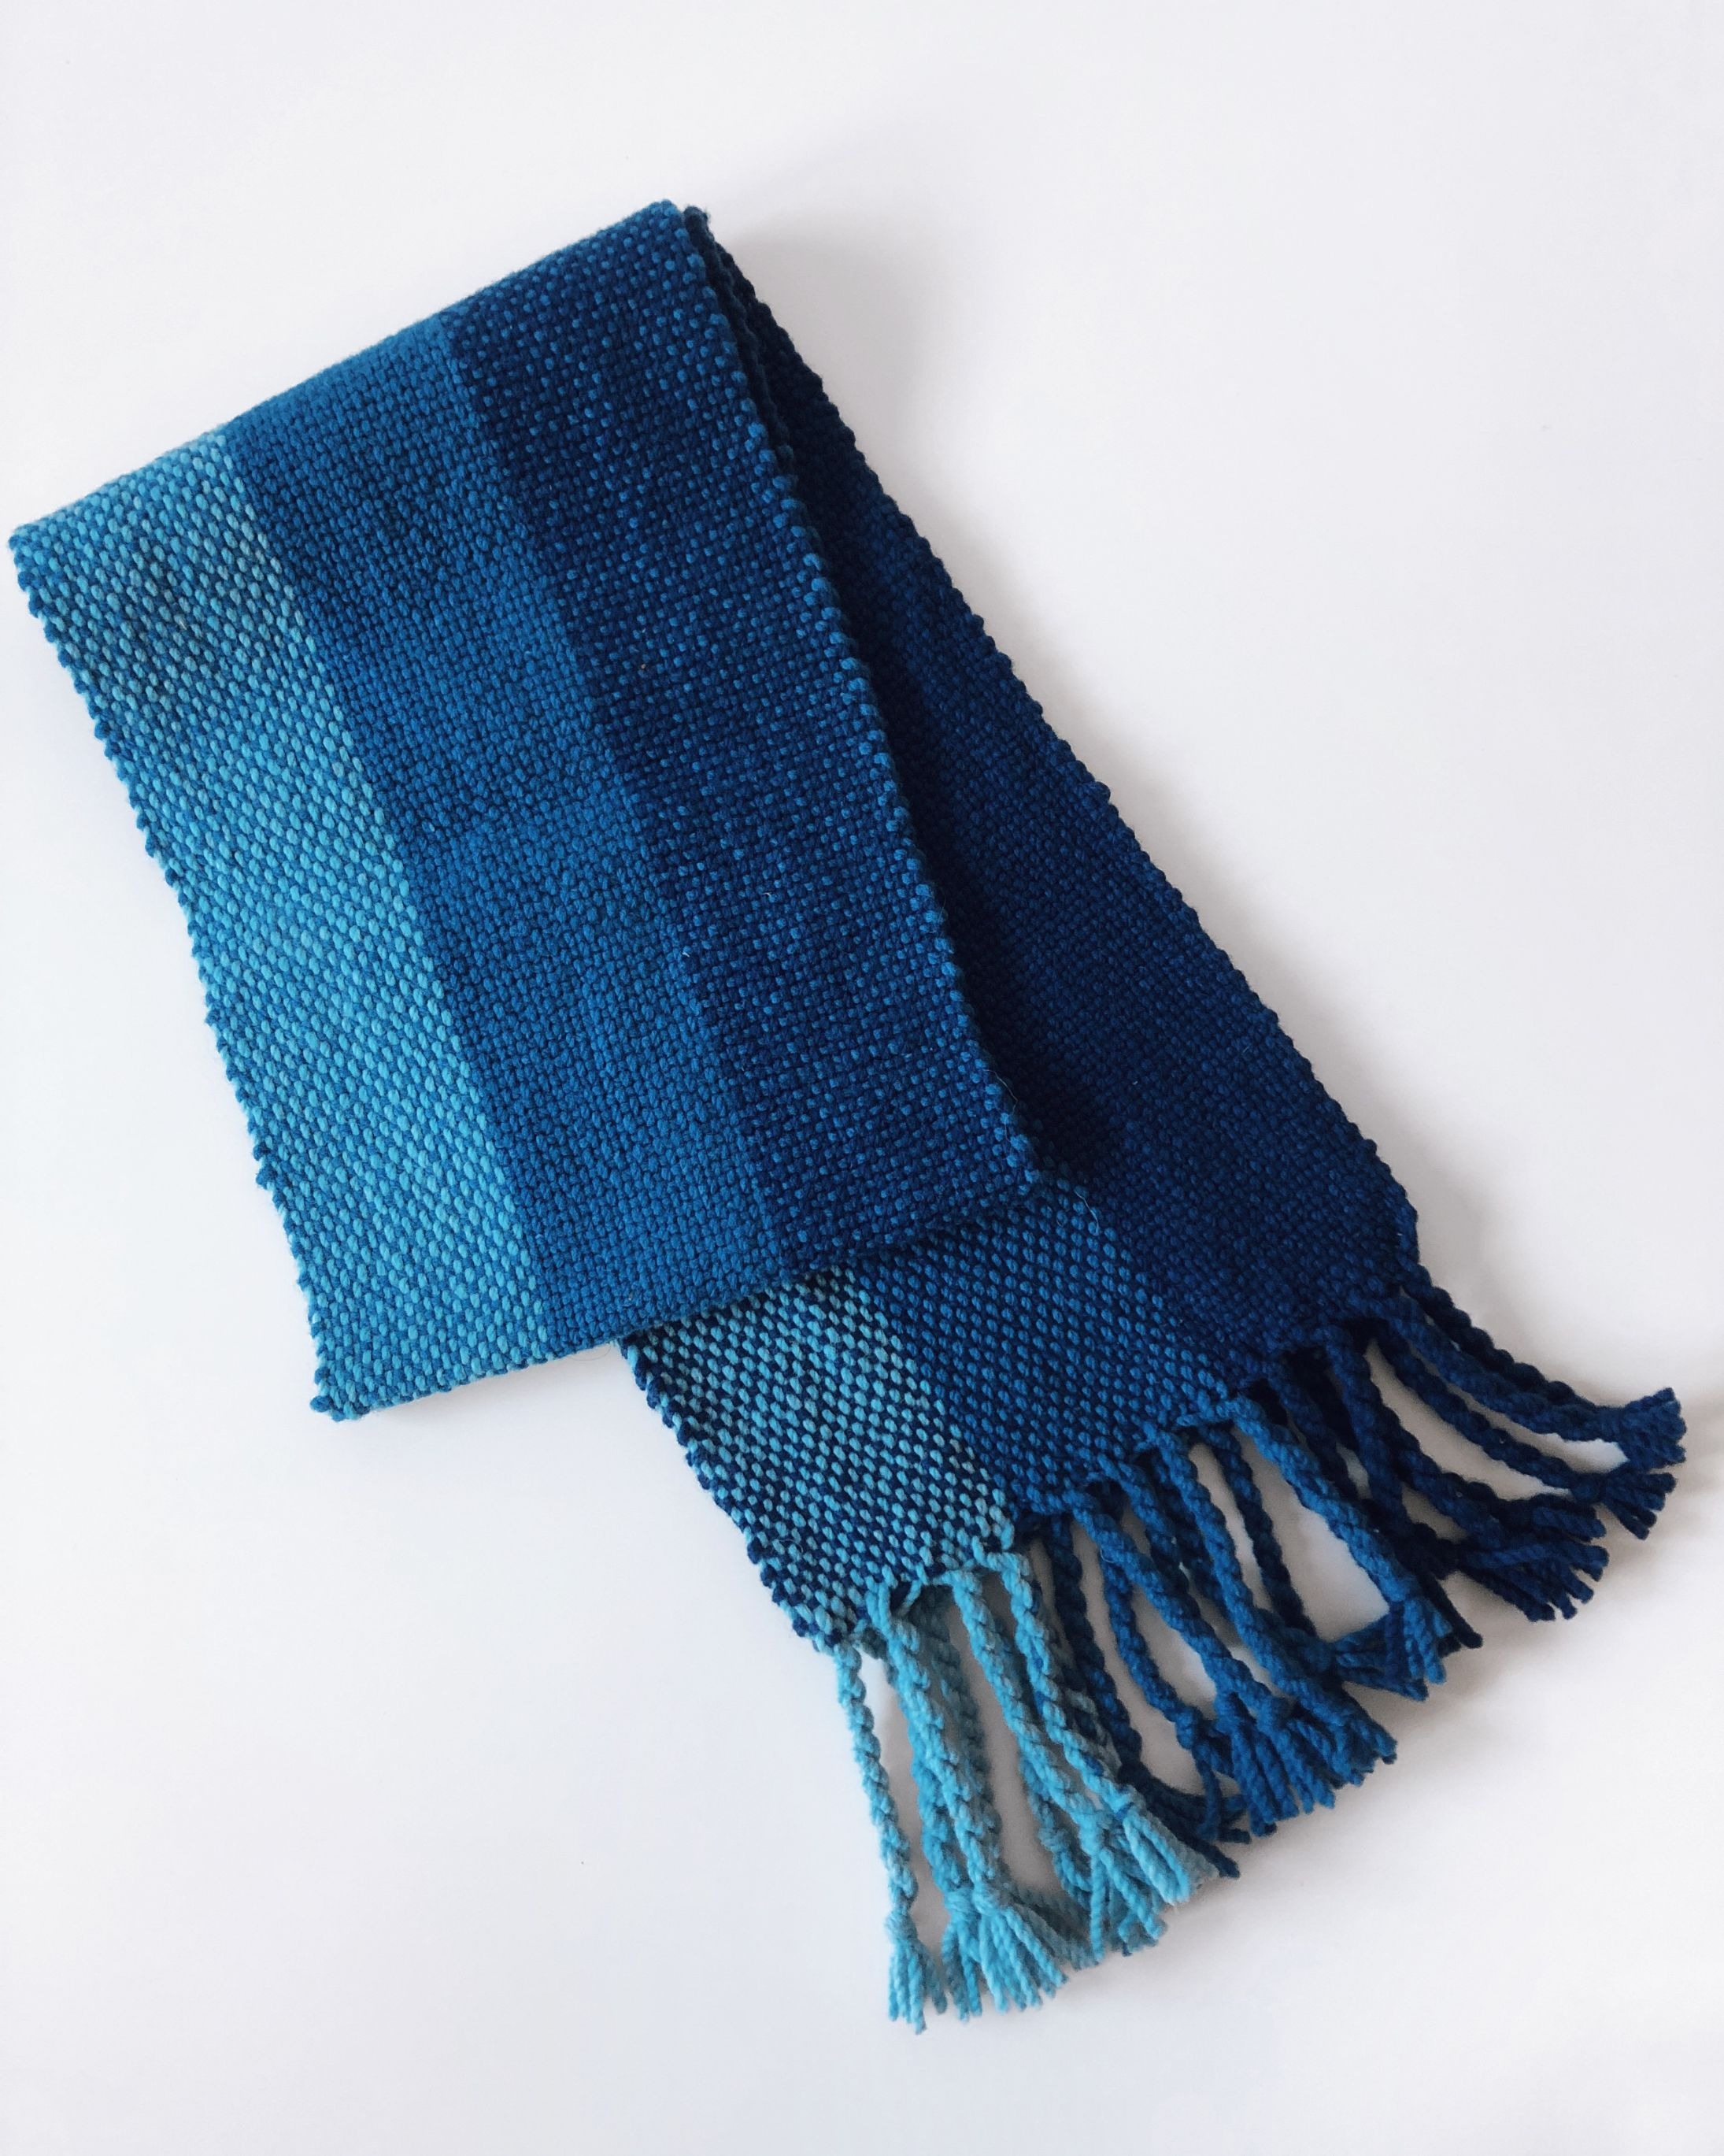 Free Pattern Weave a Cozy Merino Wool Scarf on a Rigid Heddle Loom